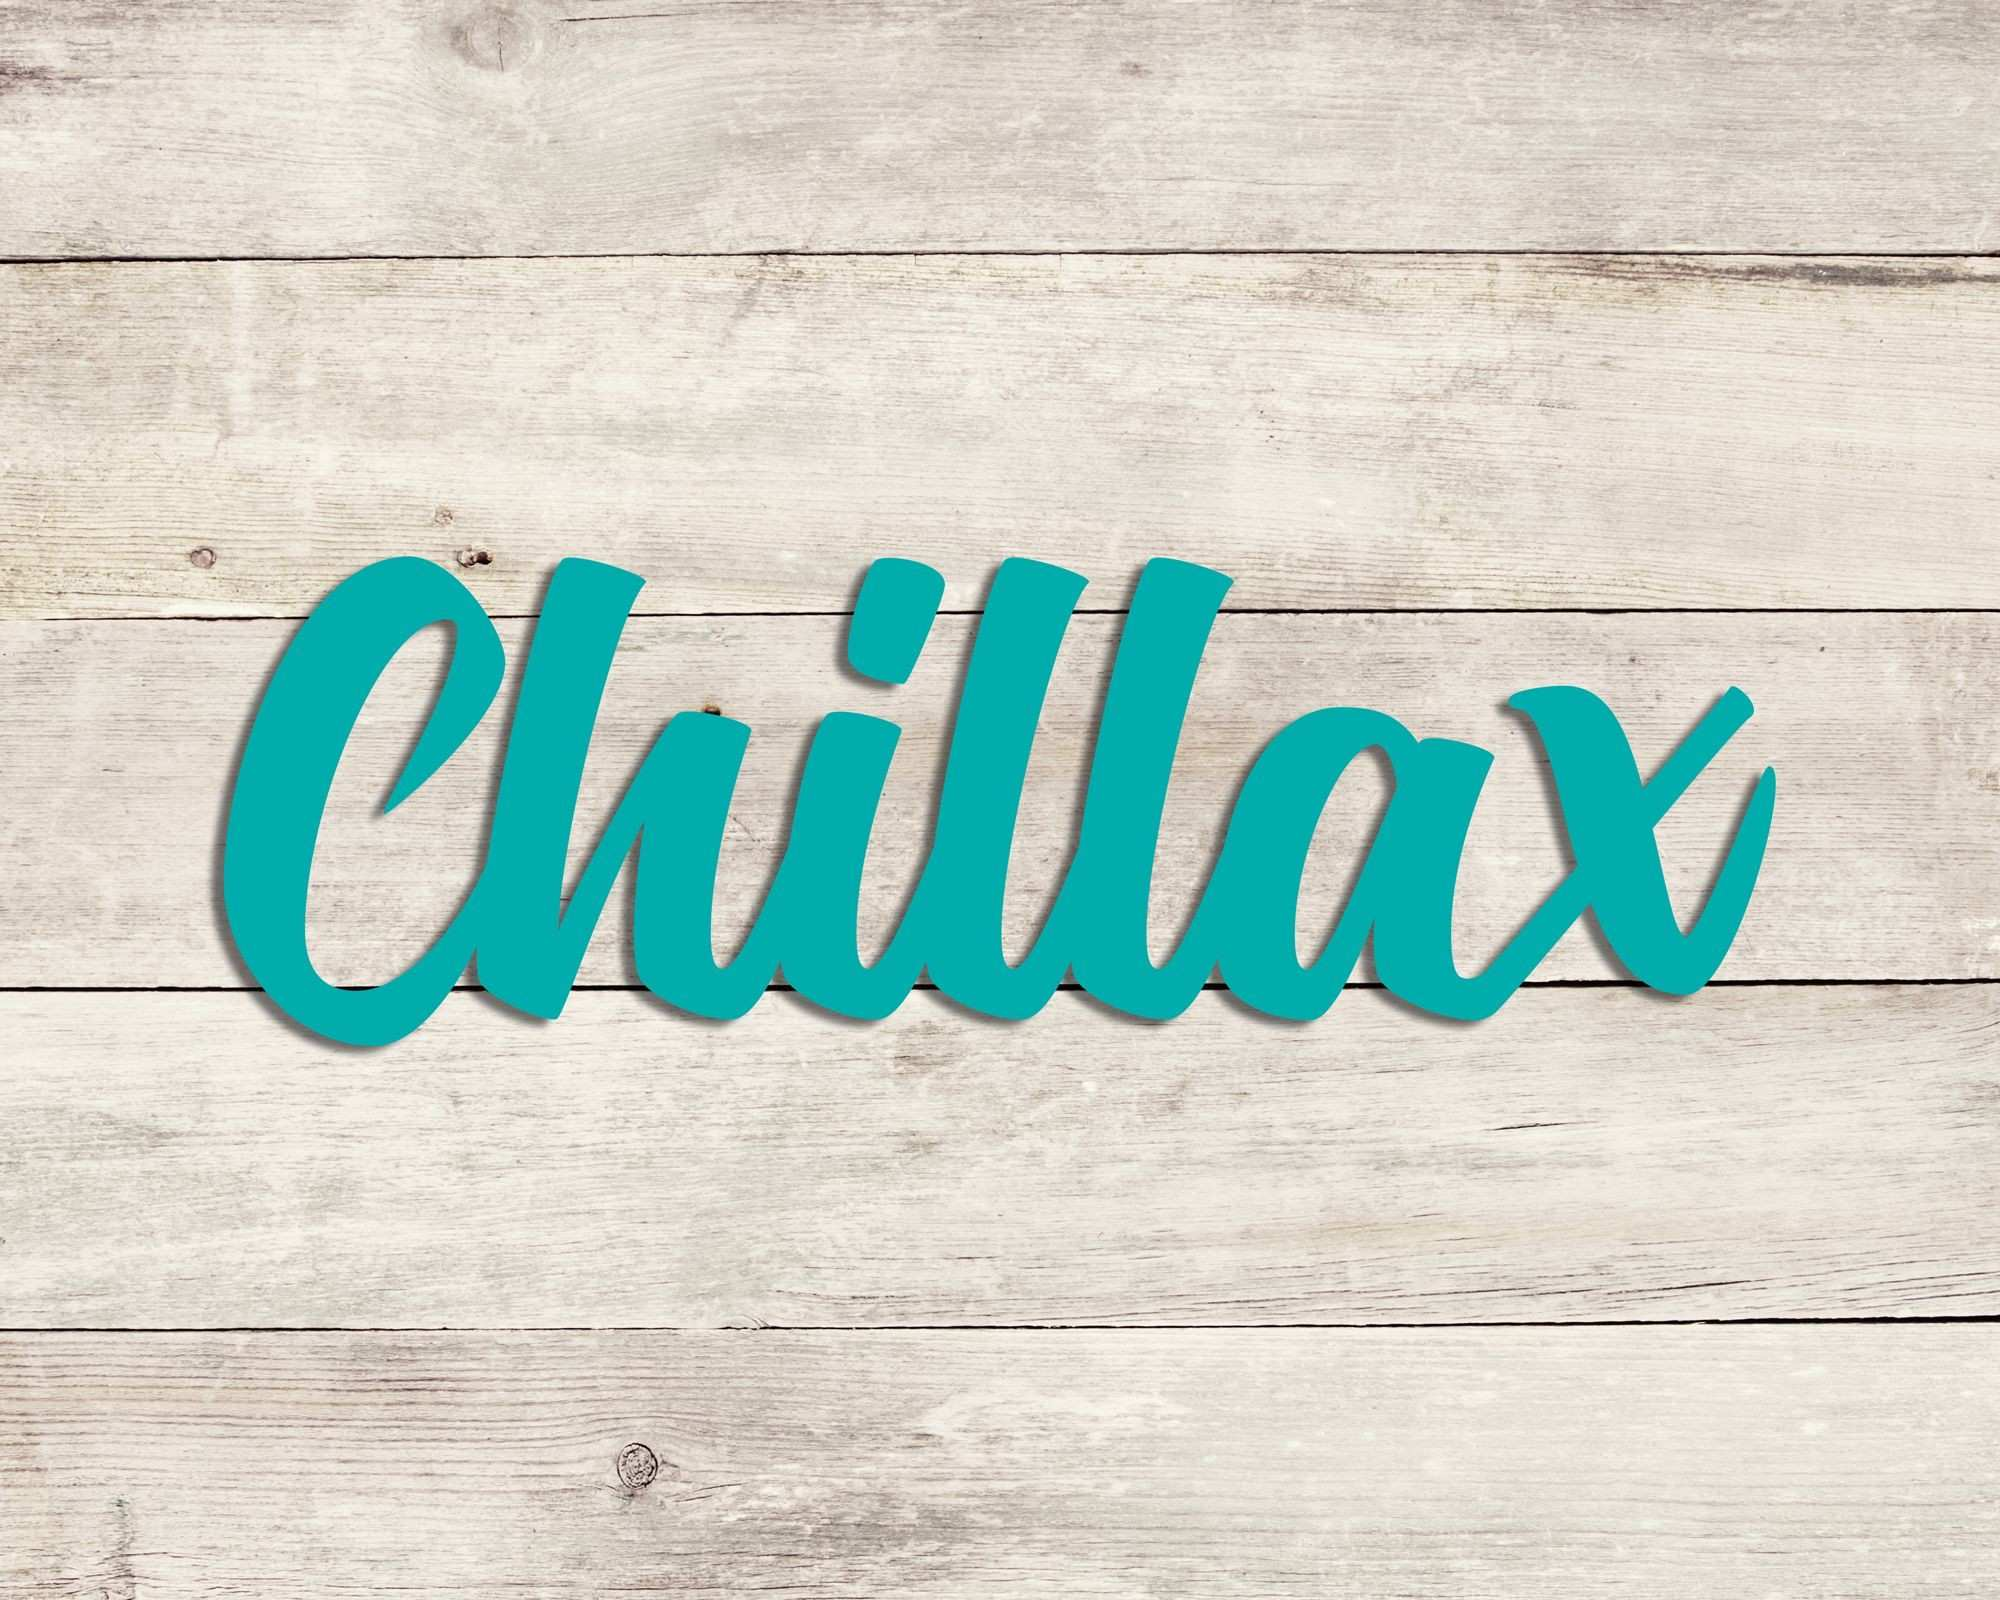 Chillax Wood Sign Wooden Letters Sign Decoration Wall